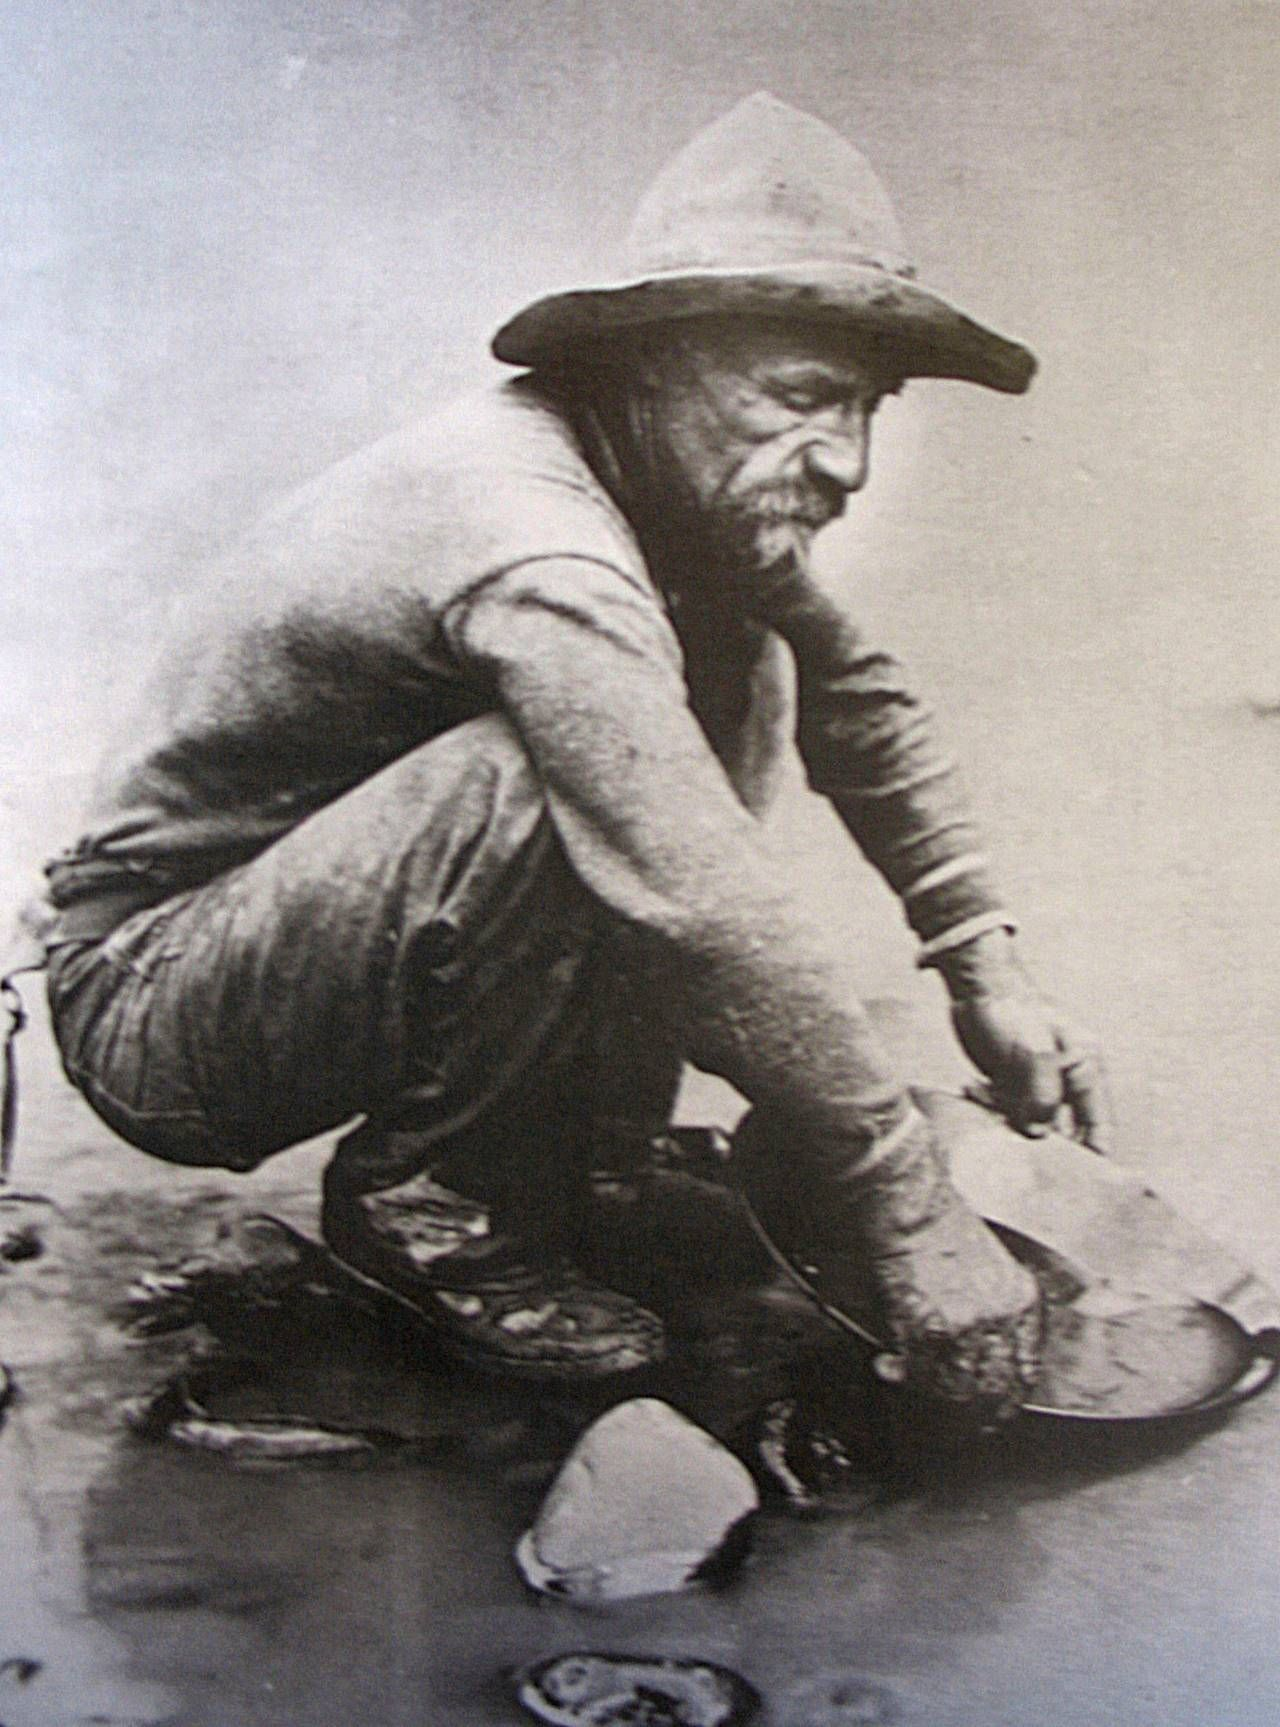 A fortyniner panning for gold at the bank of californias